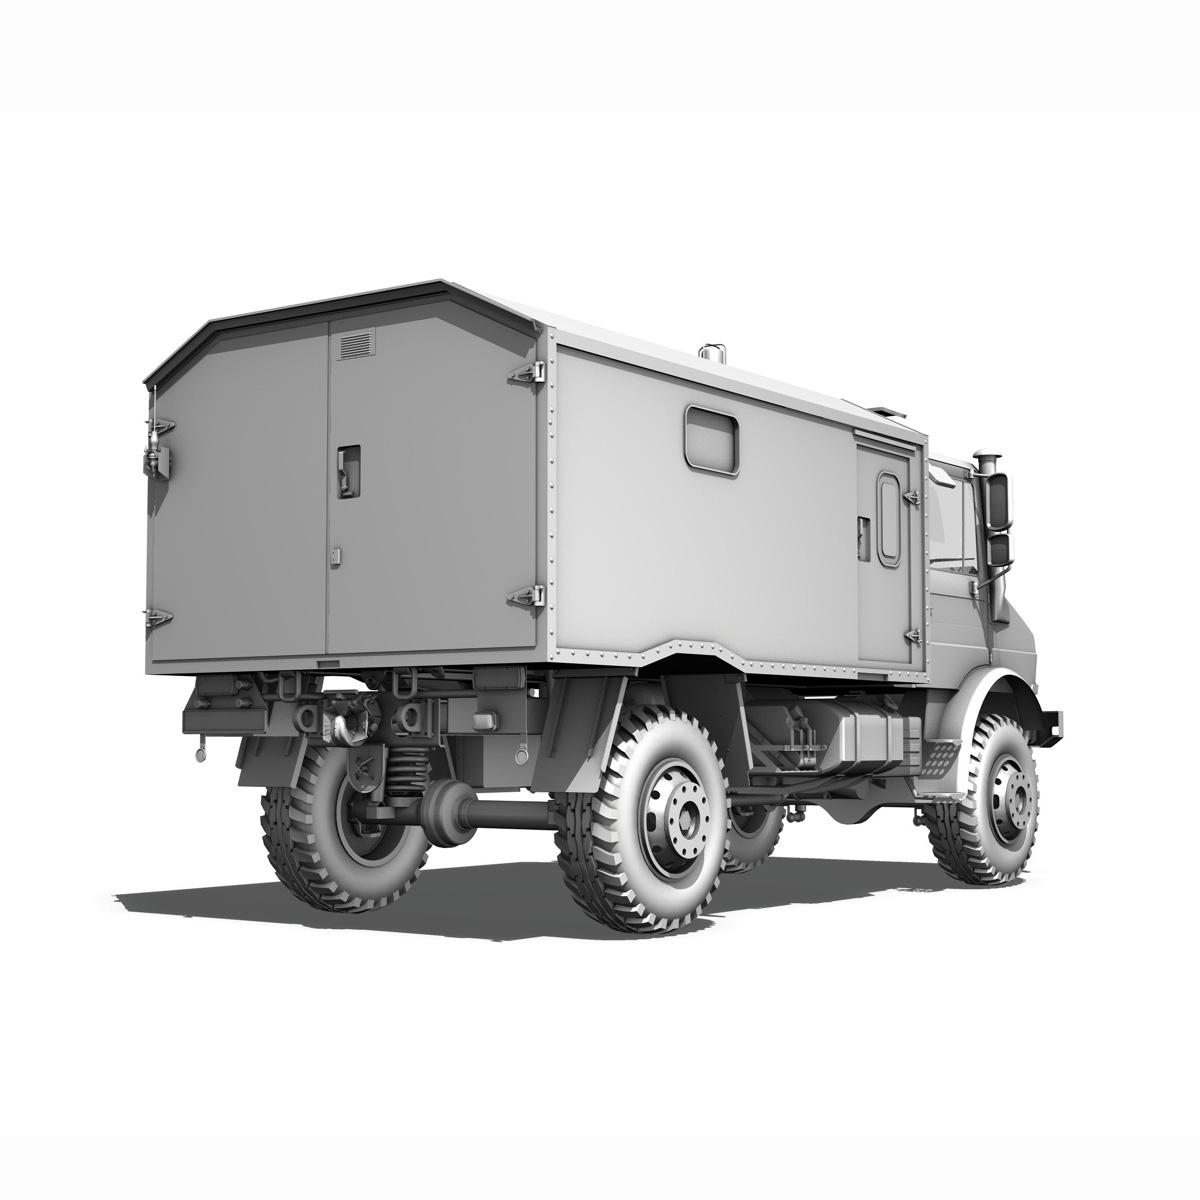 mercedes benz unimog u1300l – ambulance trailer 3d model 3ds fbx c4d lwo obj 189598